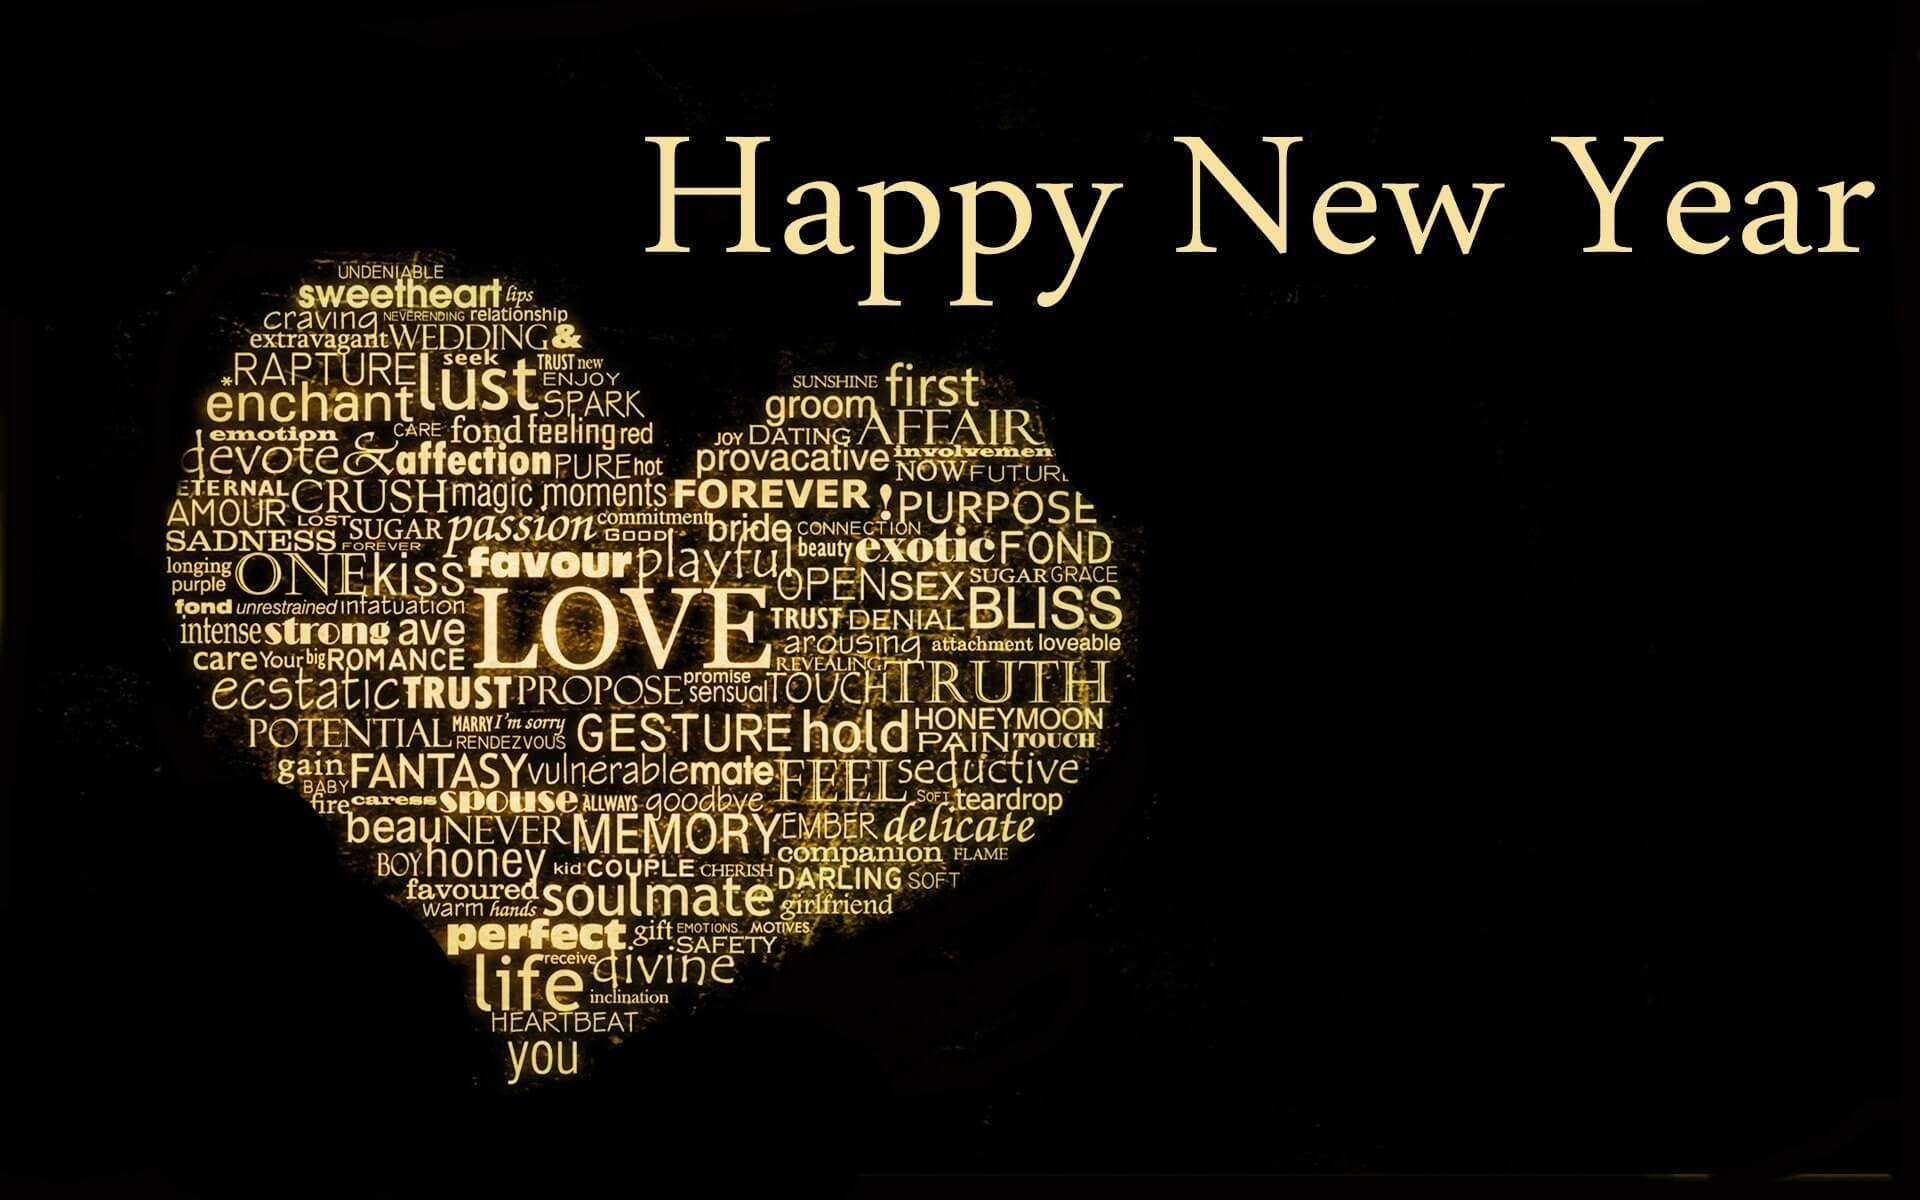 Happy New Year Msg